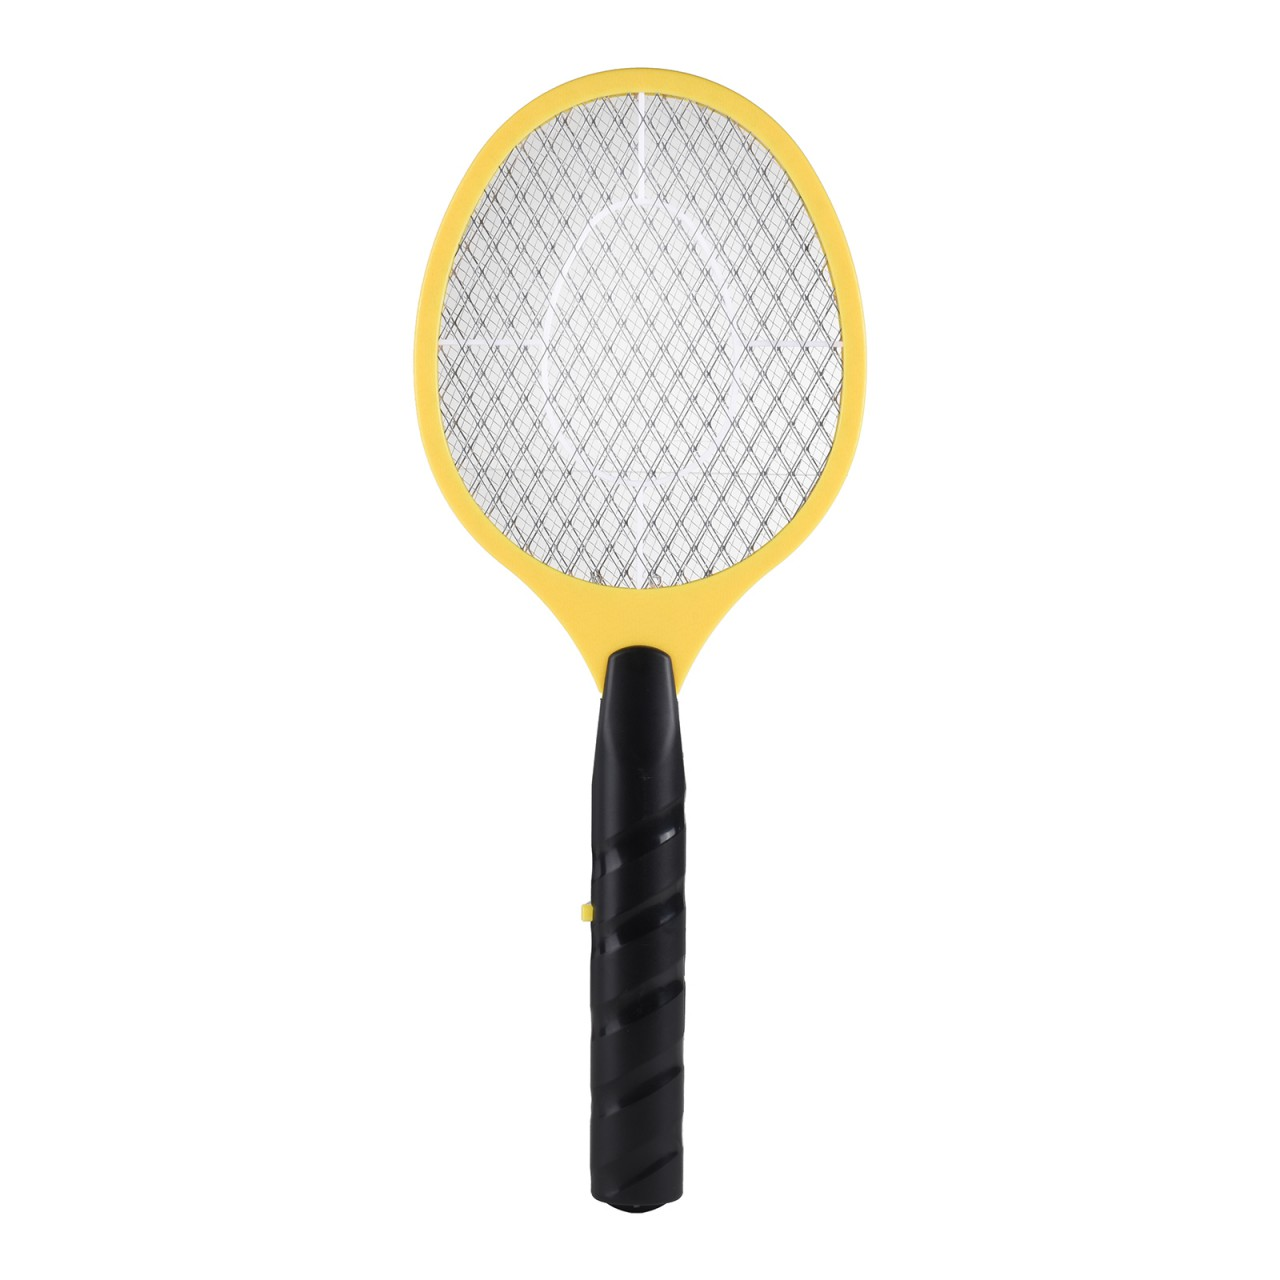 H+H Mosquito swatter TS 103